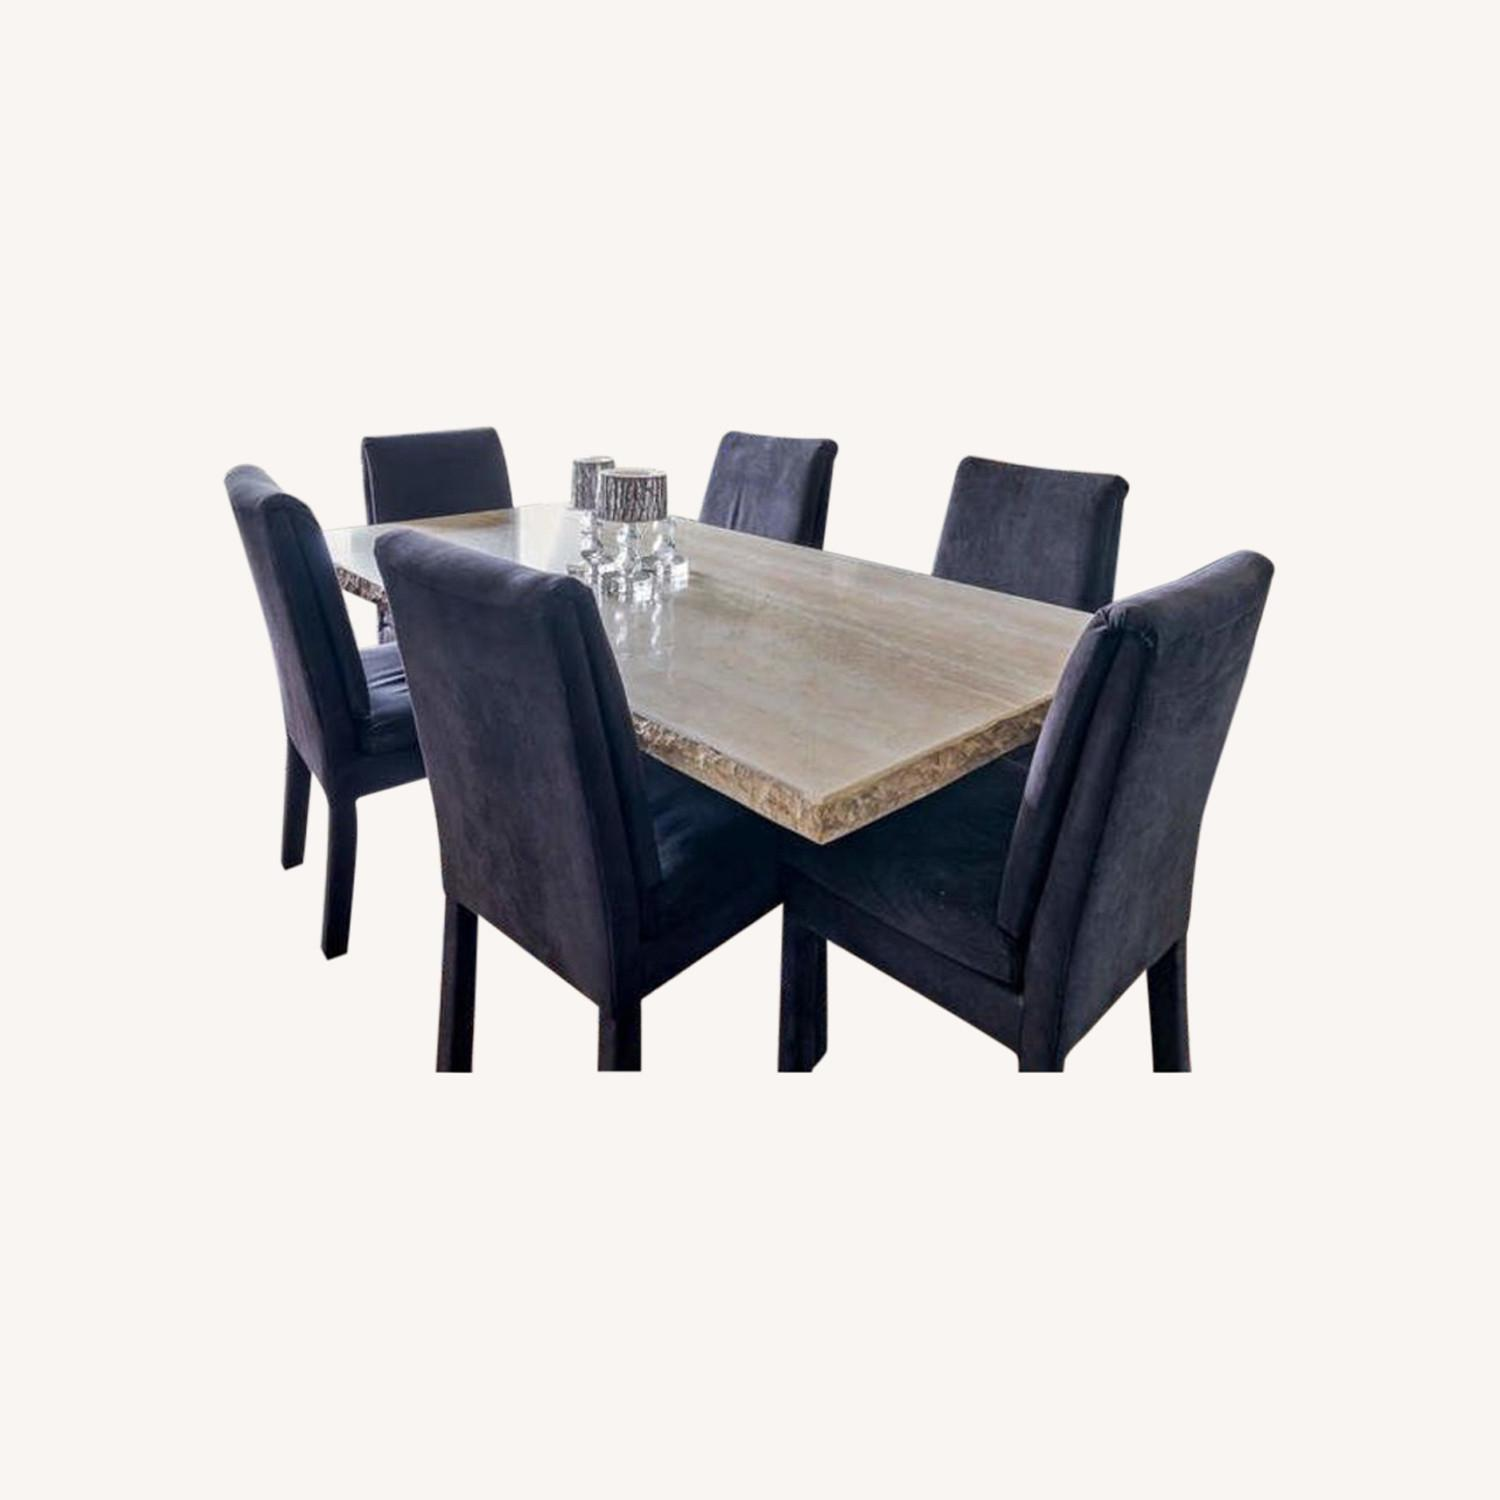 Marble 3 Piece Dining Room Set - image-0